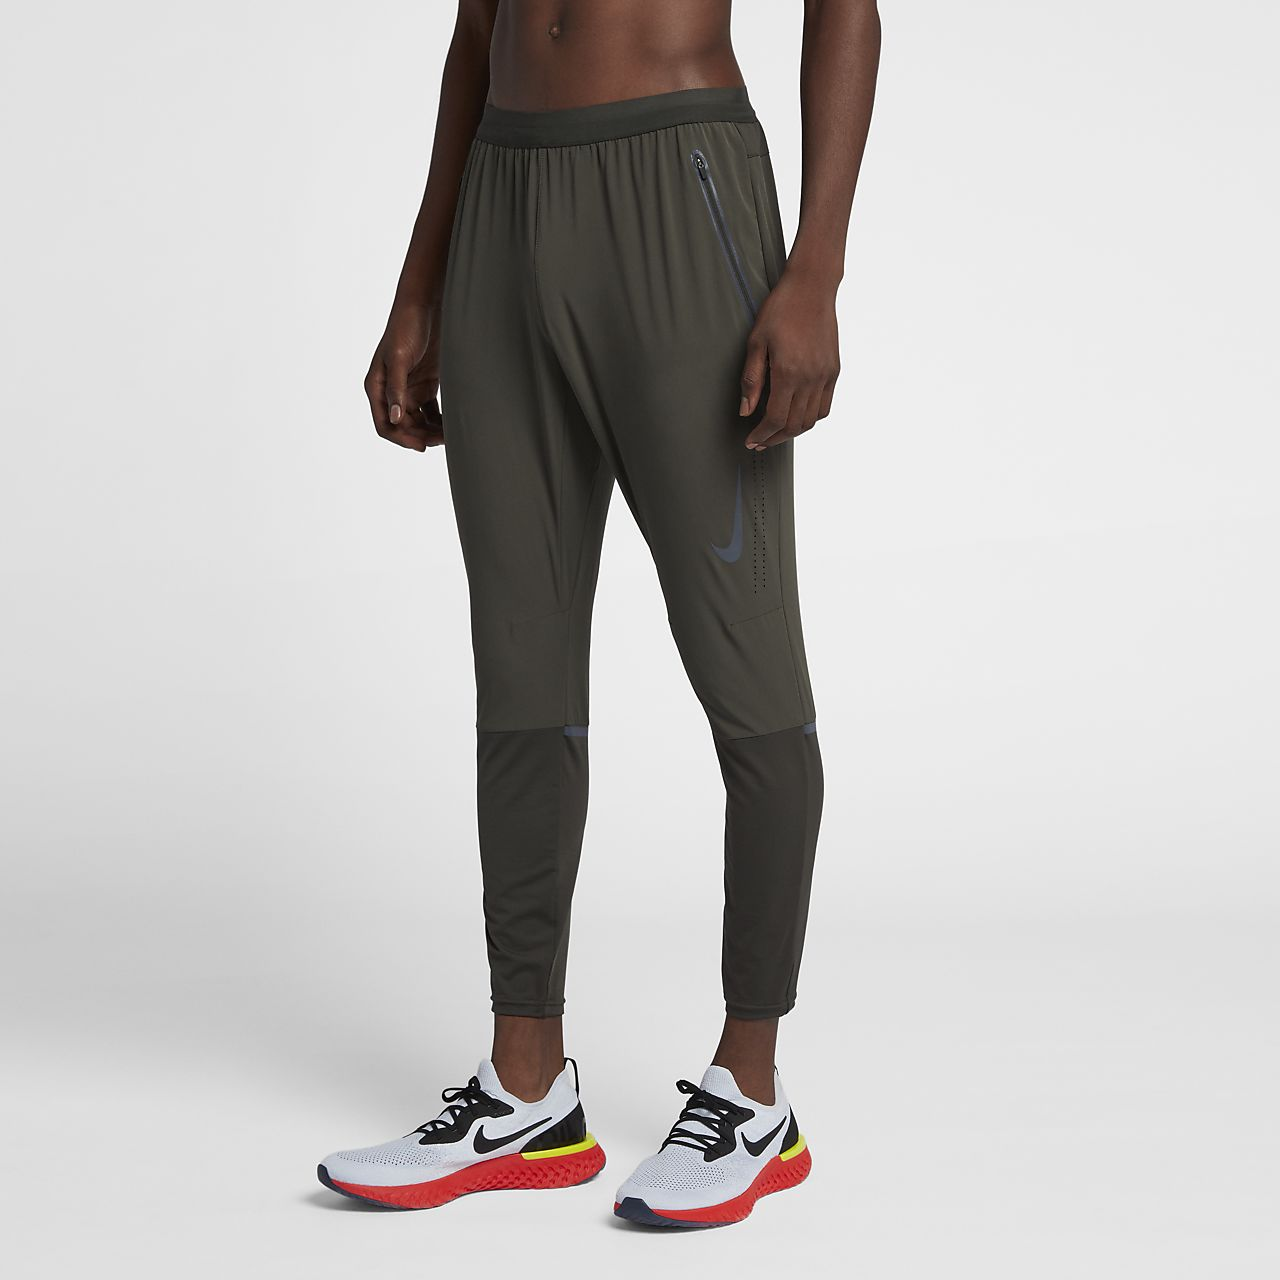 Pantalon de running Nike Swift pour Homme